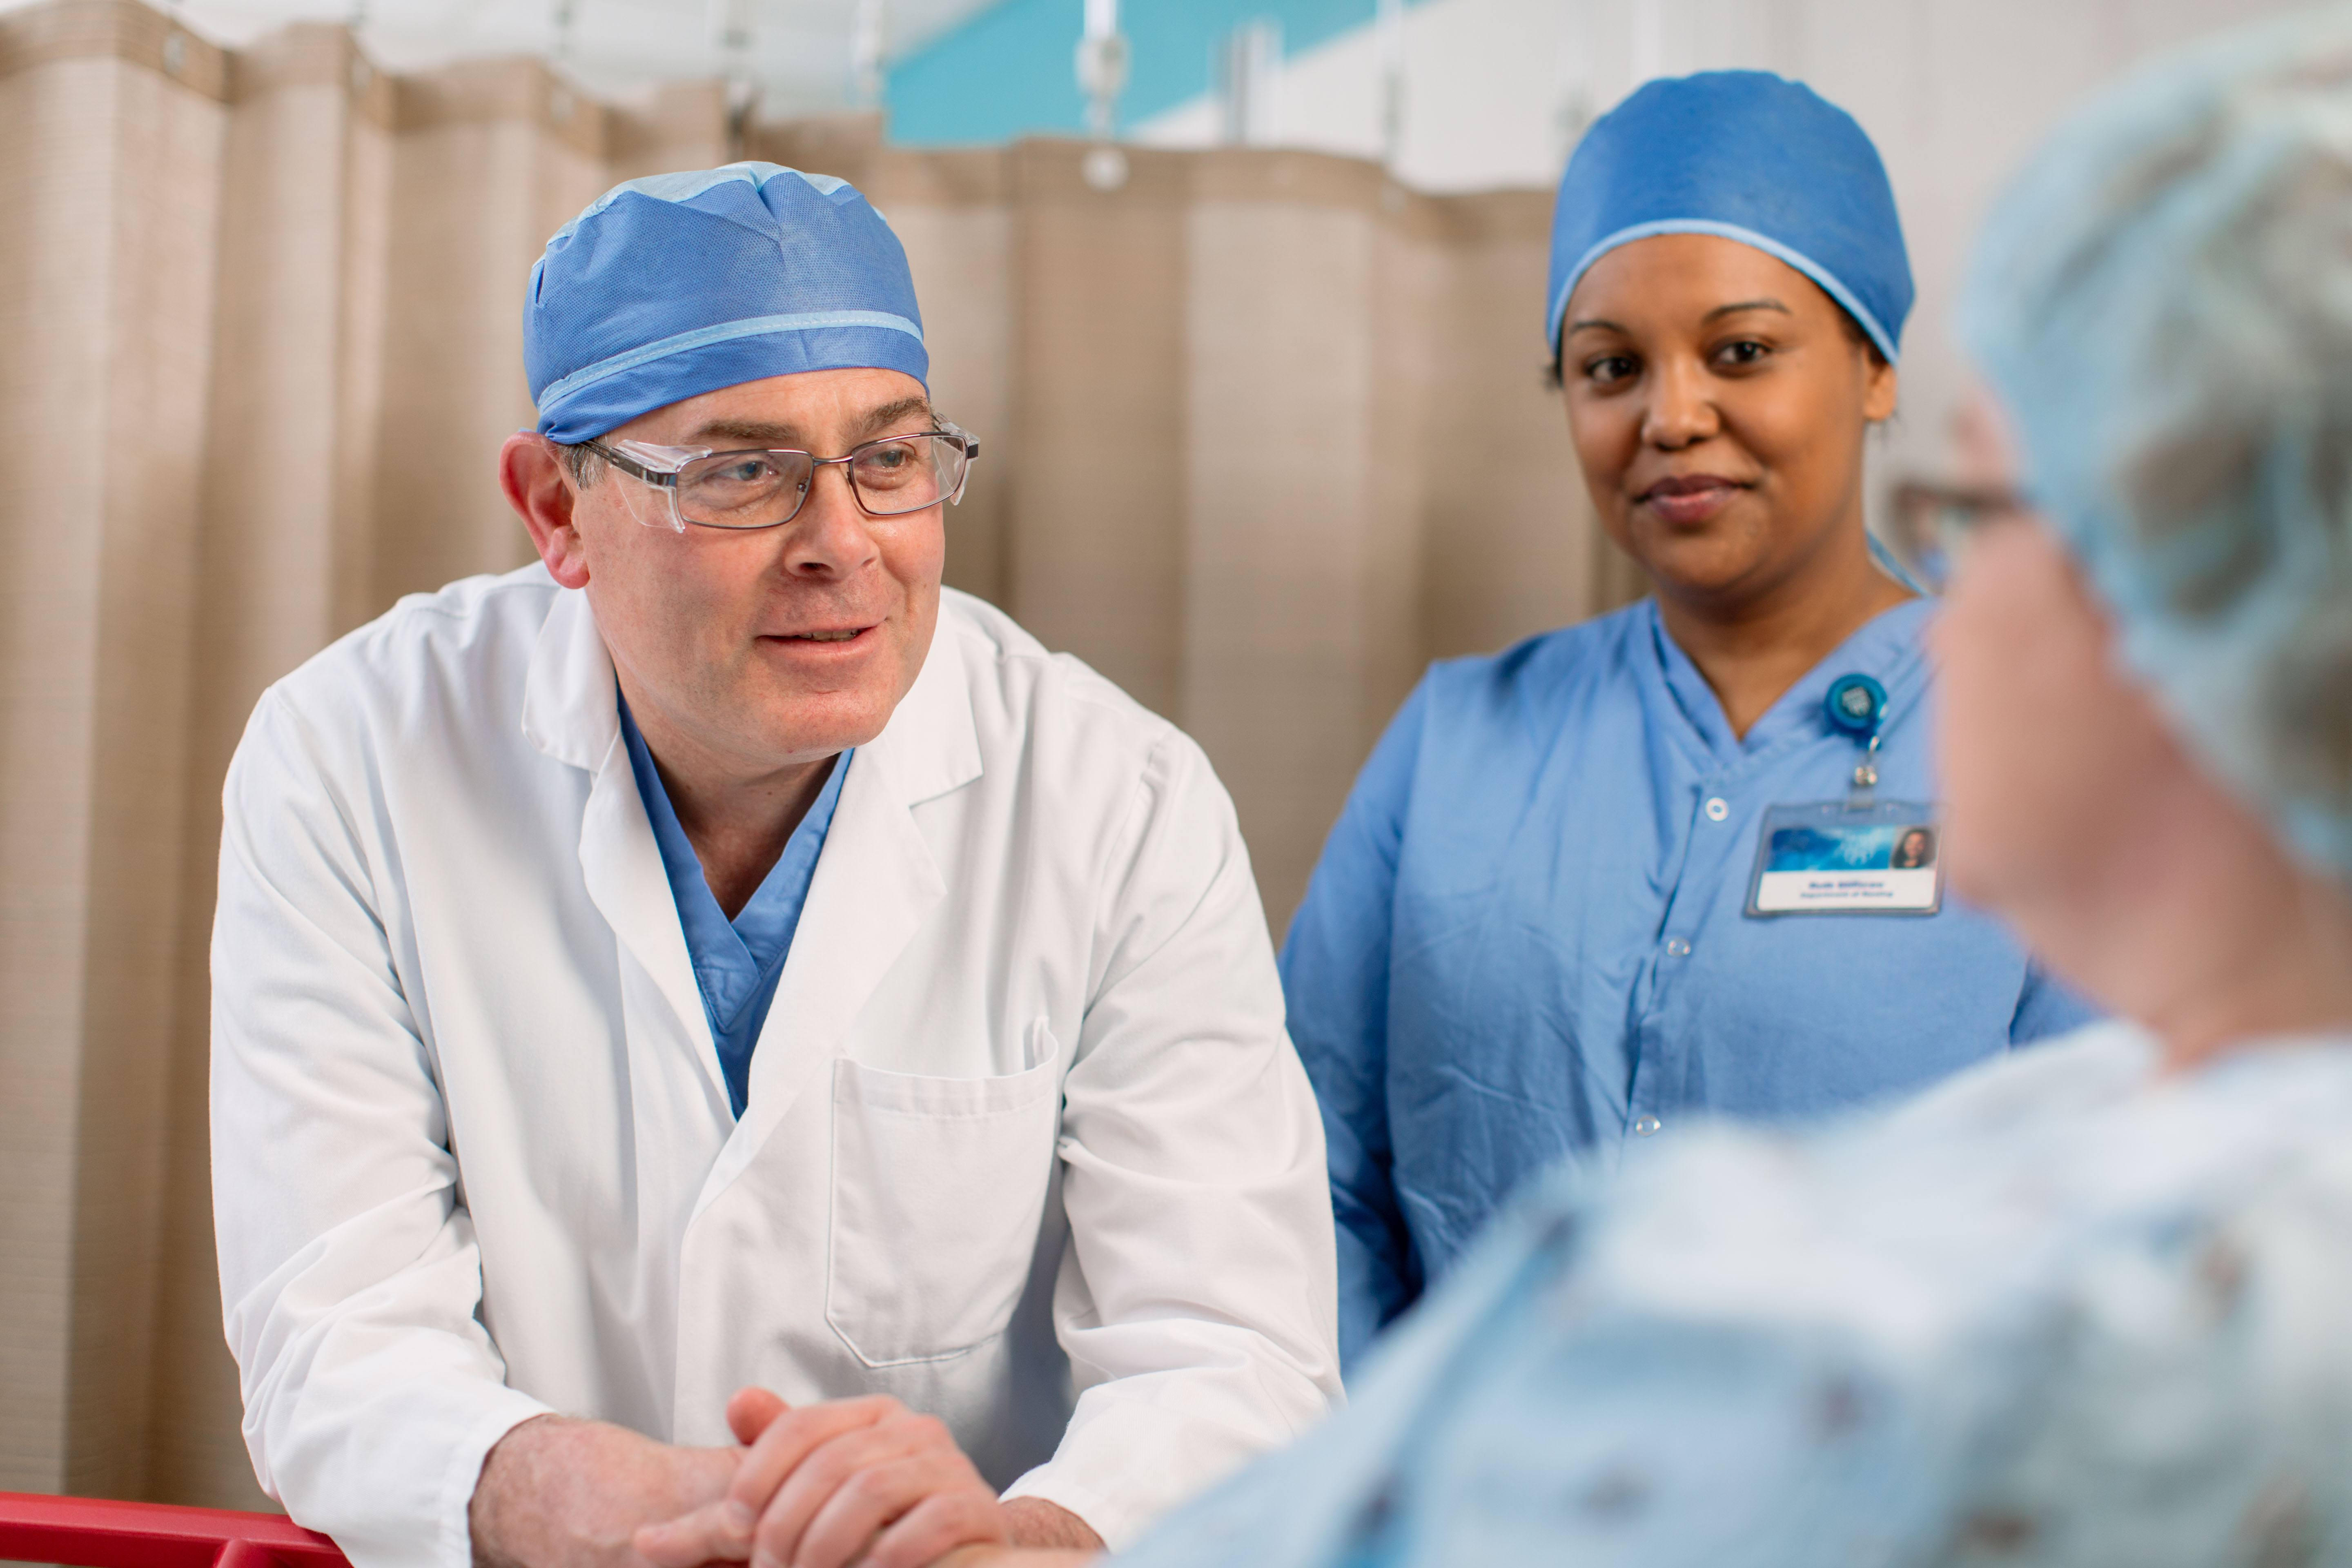 physician and nurse talking to patient